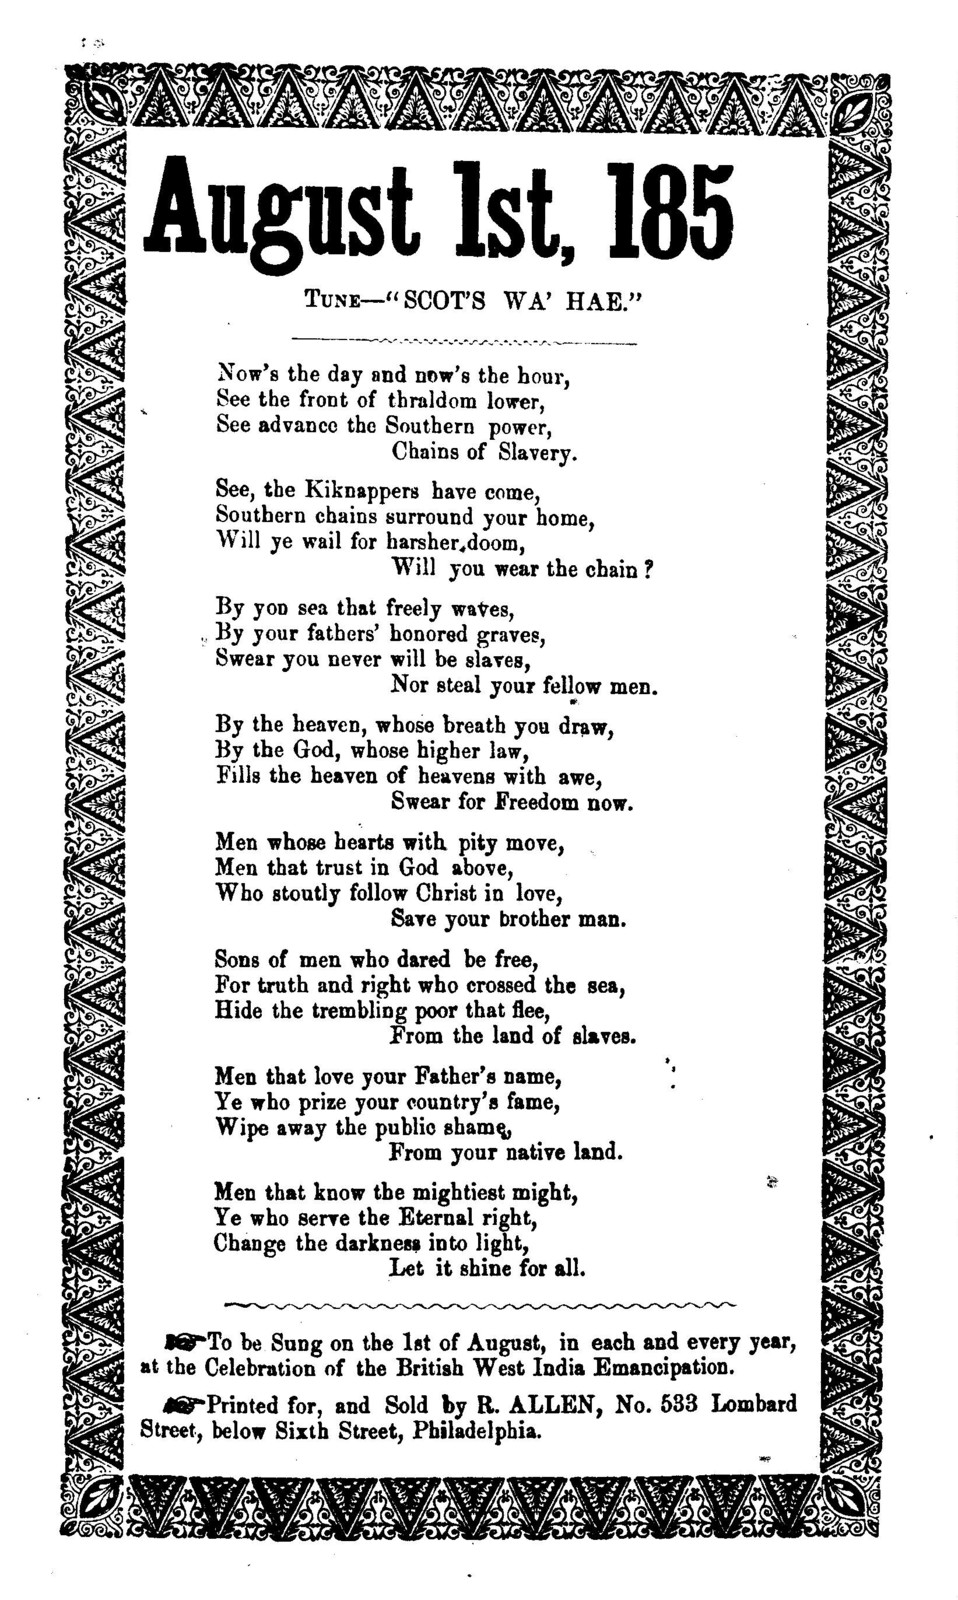 """August 1st, 185. Tune-""""Scot's wa'hae."""" Printed for and sold by R. Allen, No. 533 Lombard Street., Philadelphia"""